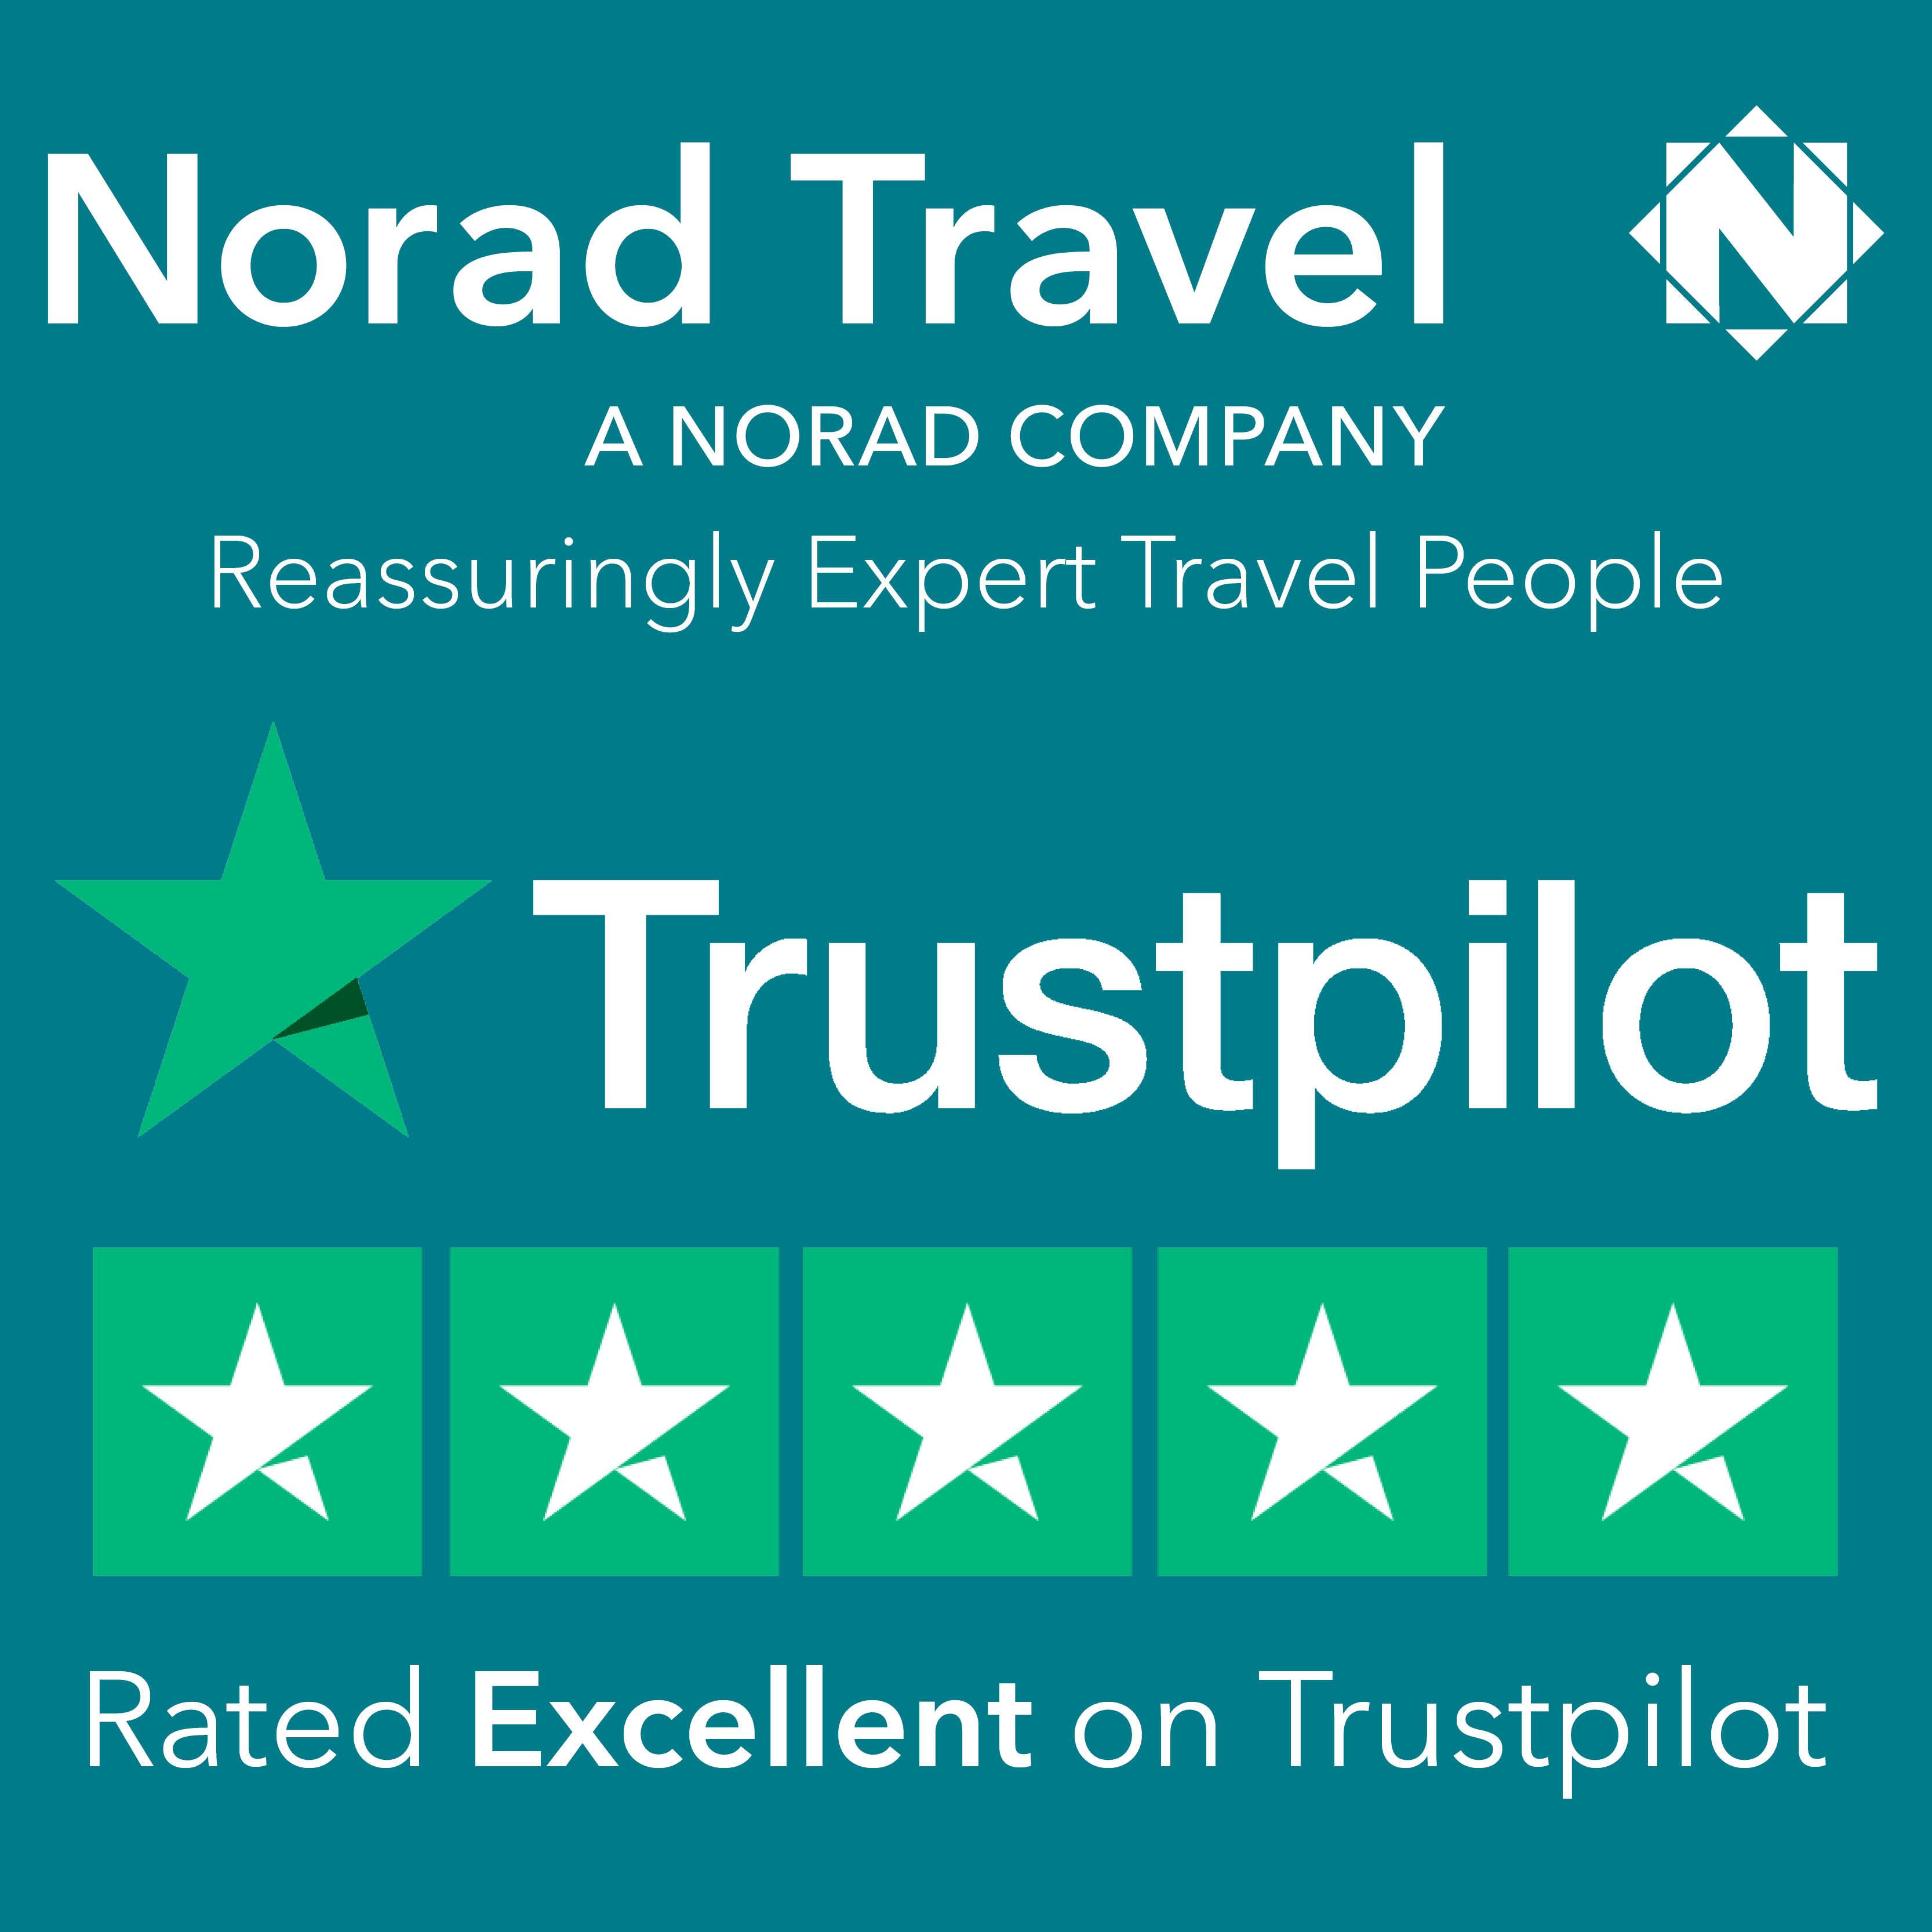 Norad Travel Reassuringly Expert Travel People